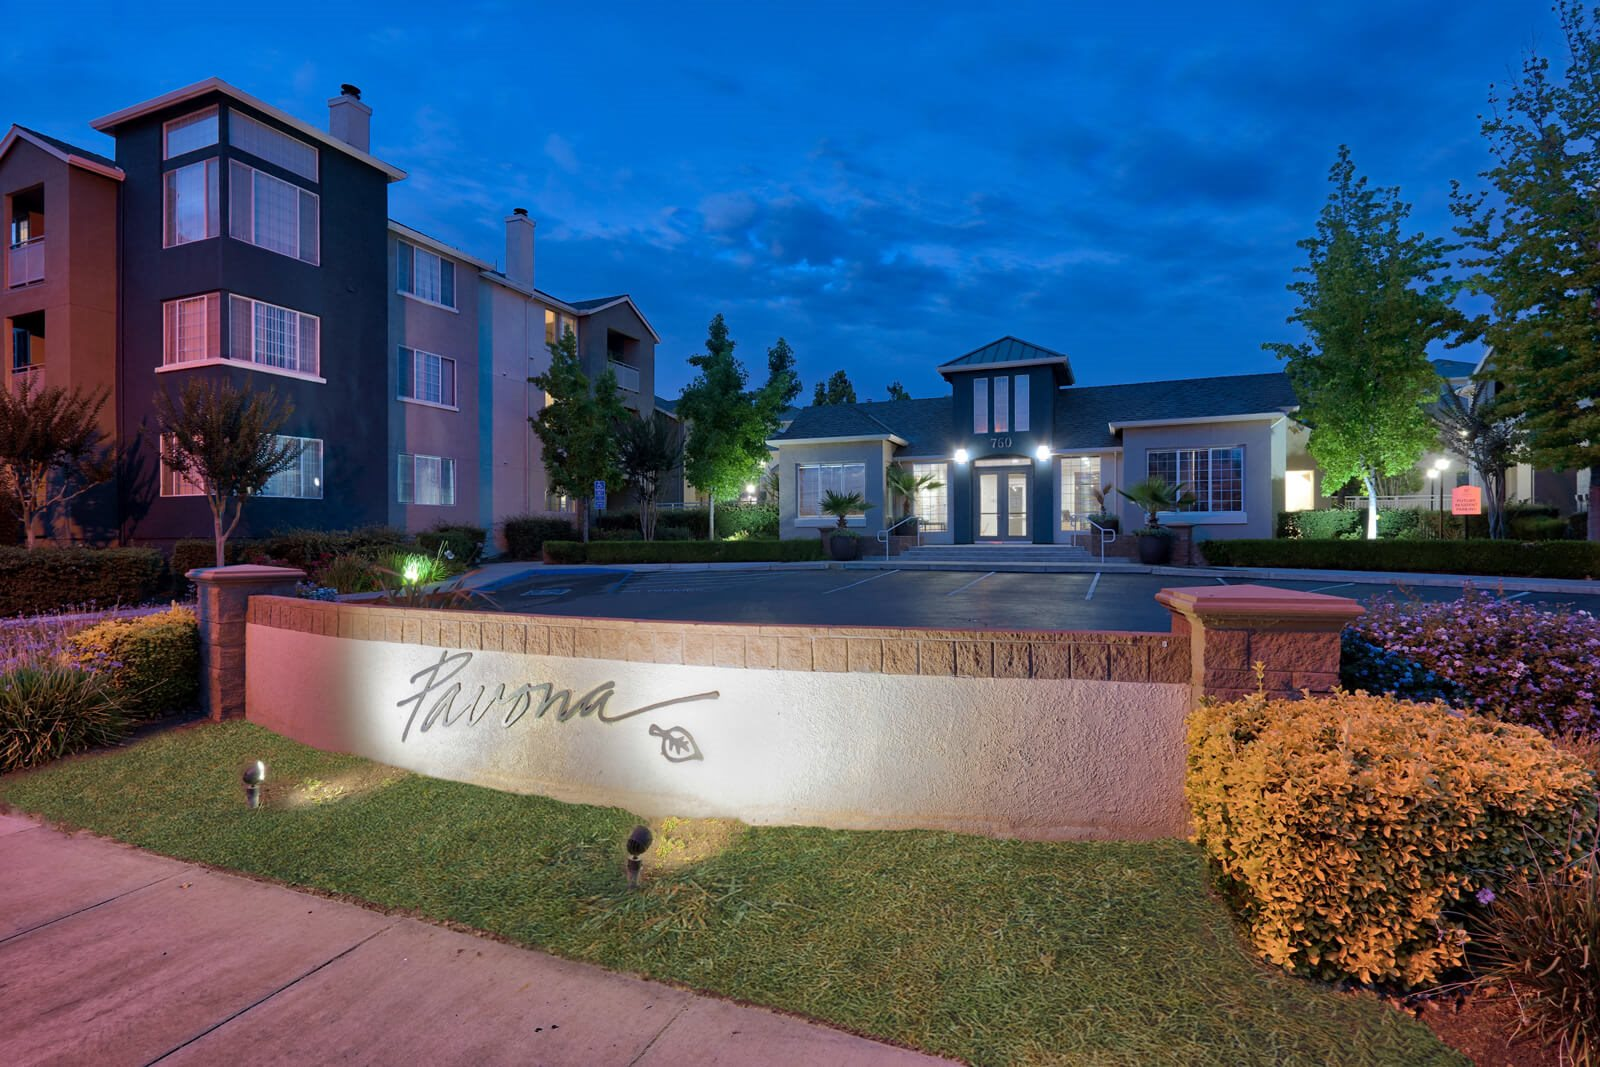 Luxury Apartments Available at Pavona Apartments, 760 N. 7th Street, San Jose